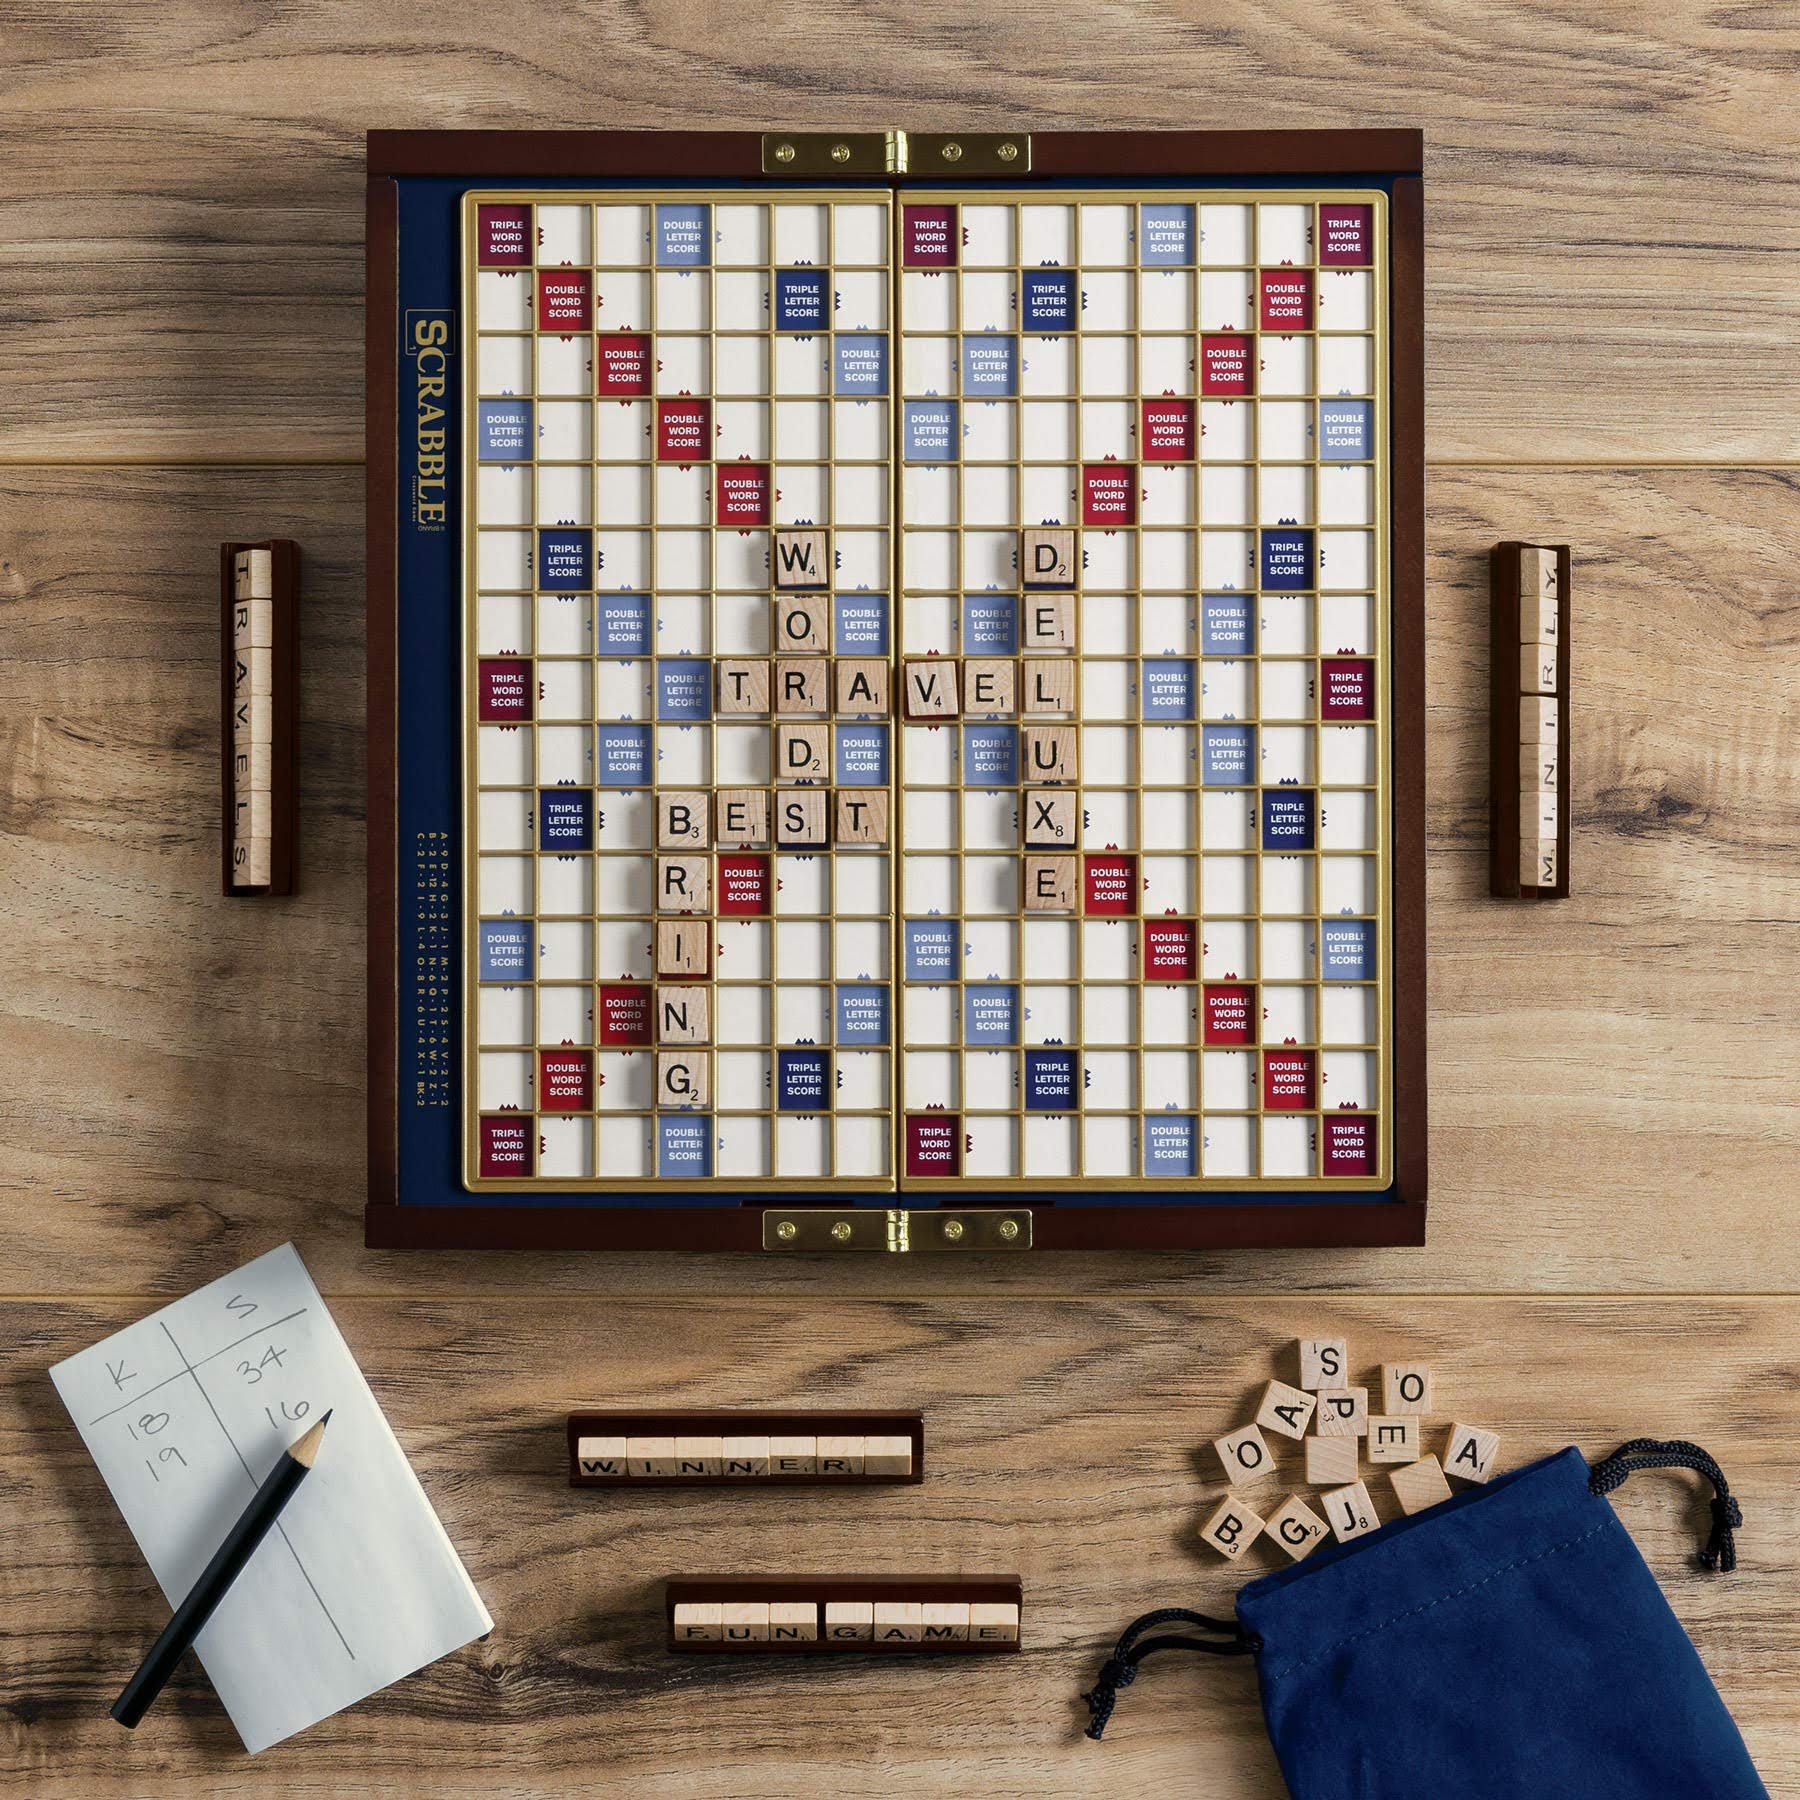 Scrabble Deluxe Travel Edition by WS Game Company